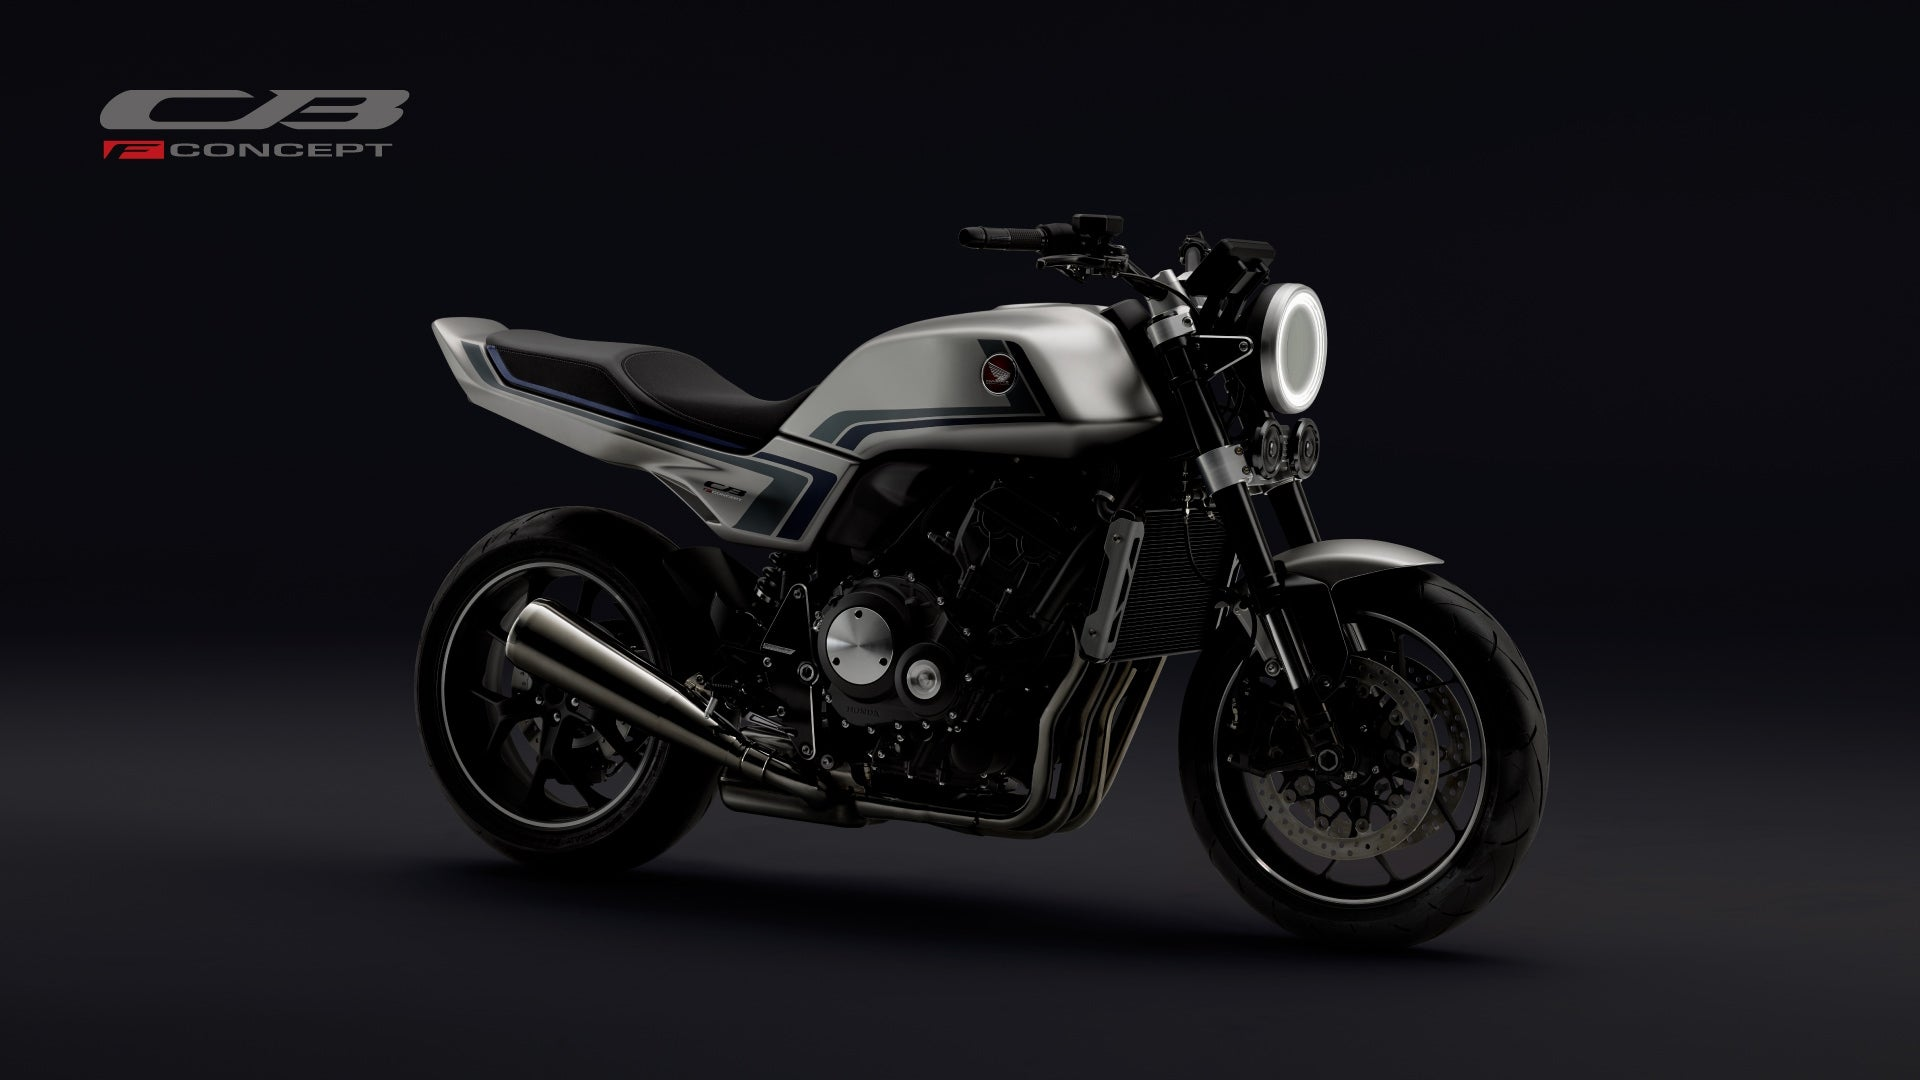 The Honda CB-F Concept Makes Me Realise I've Almost Become My Dad